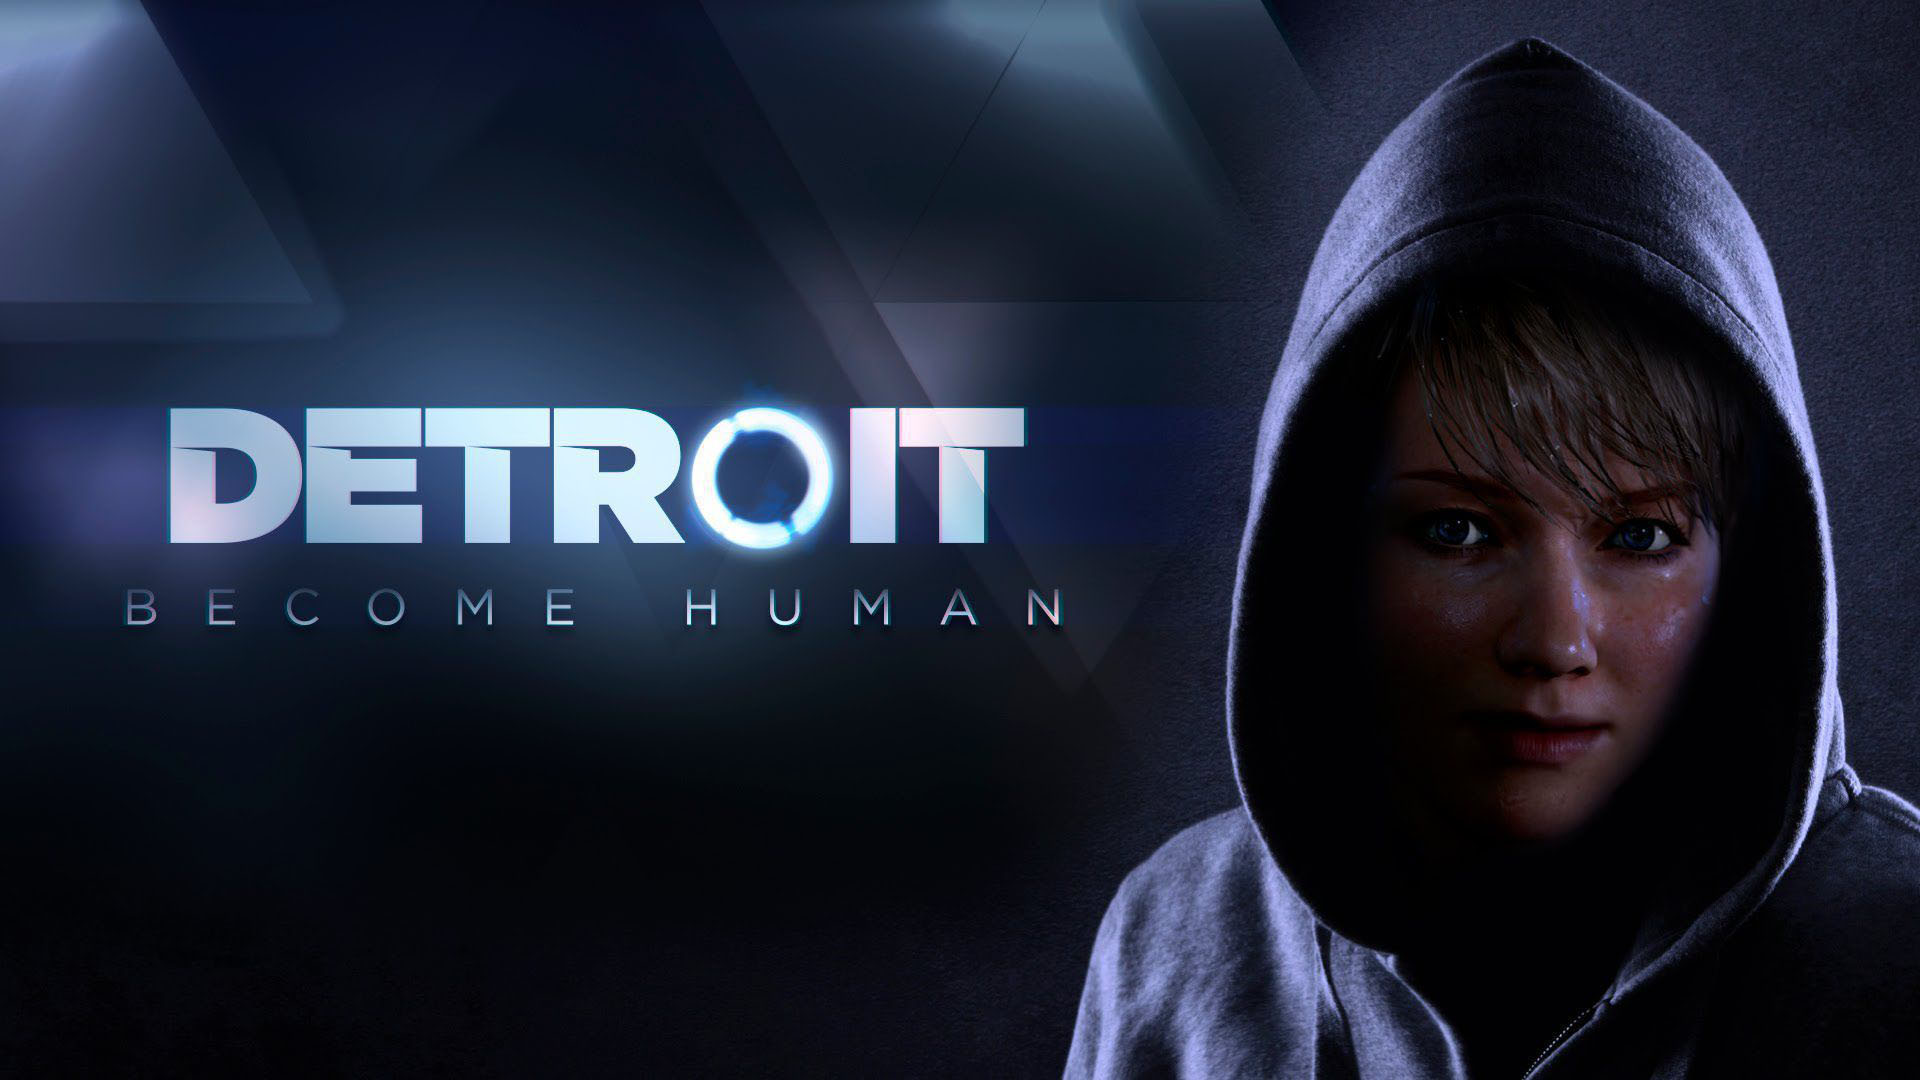 detroit become human pc download